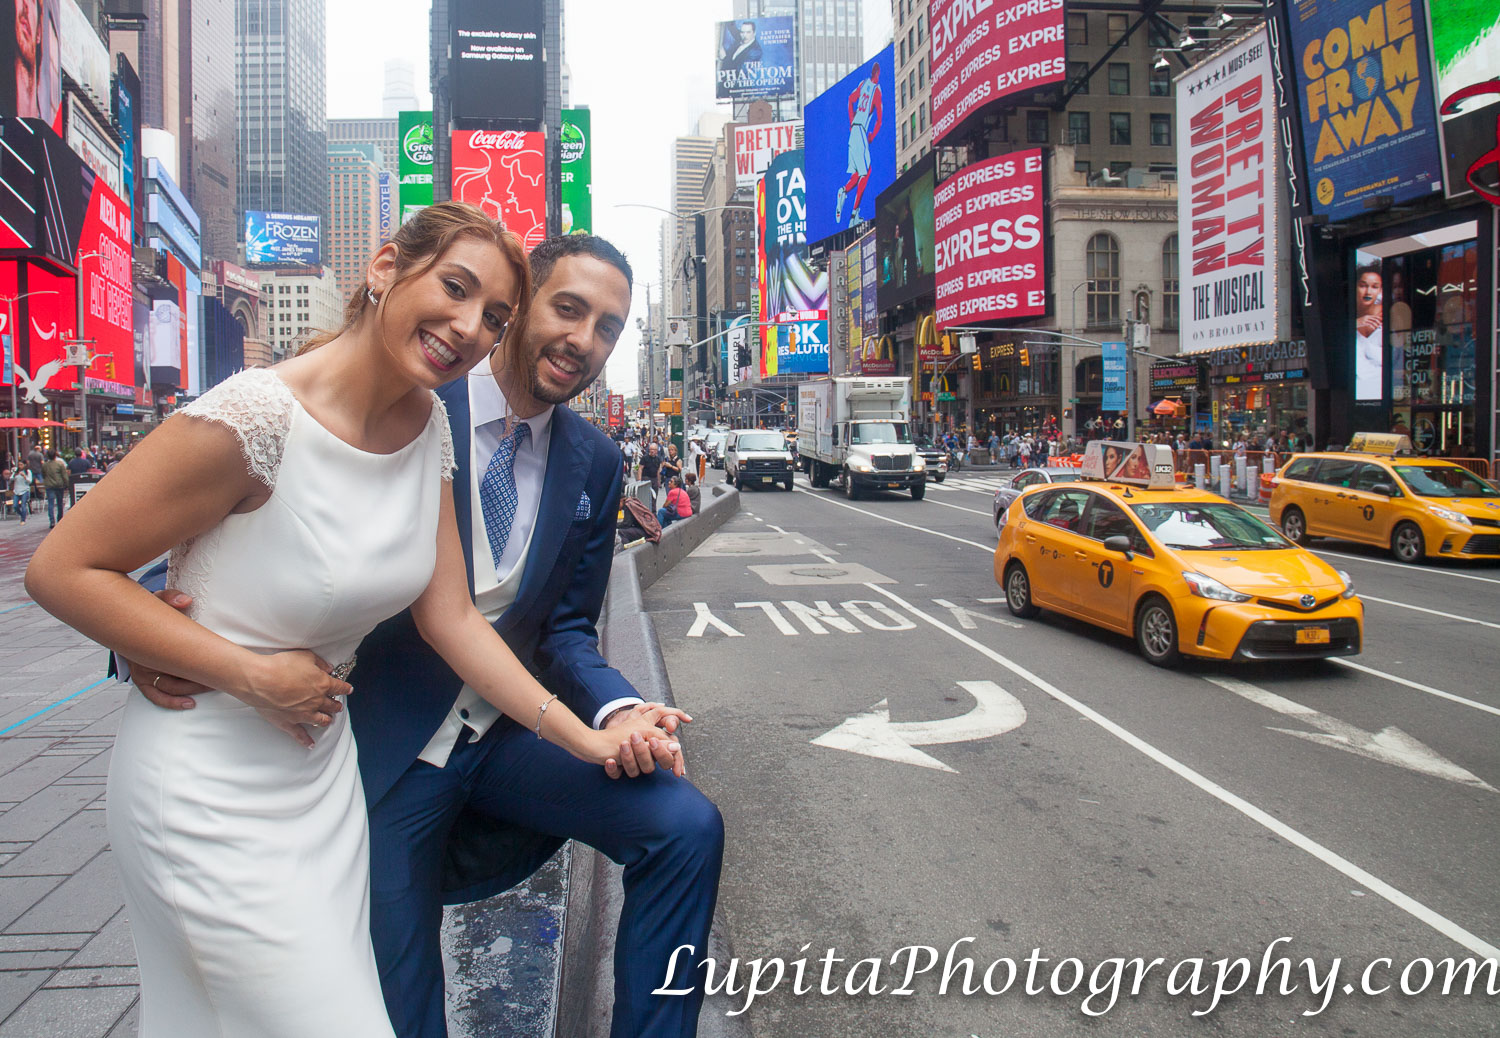 Pareja de España en Times Square. Ciudad de Nueva York. Couple from Spain in Times Square. New York City.